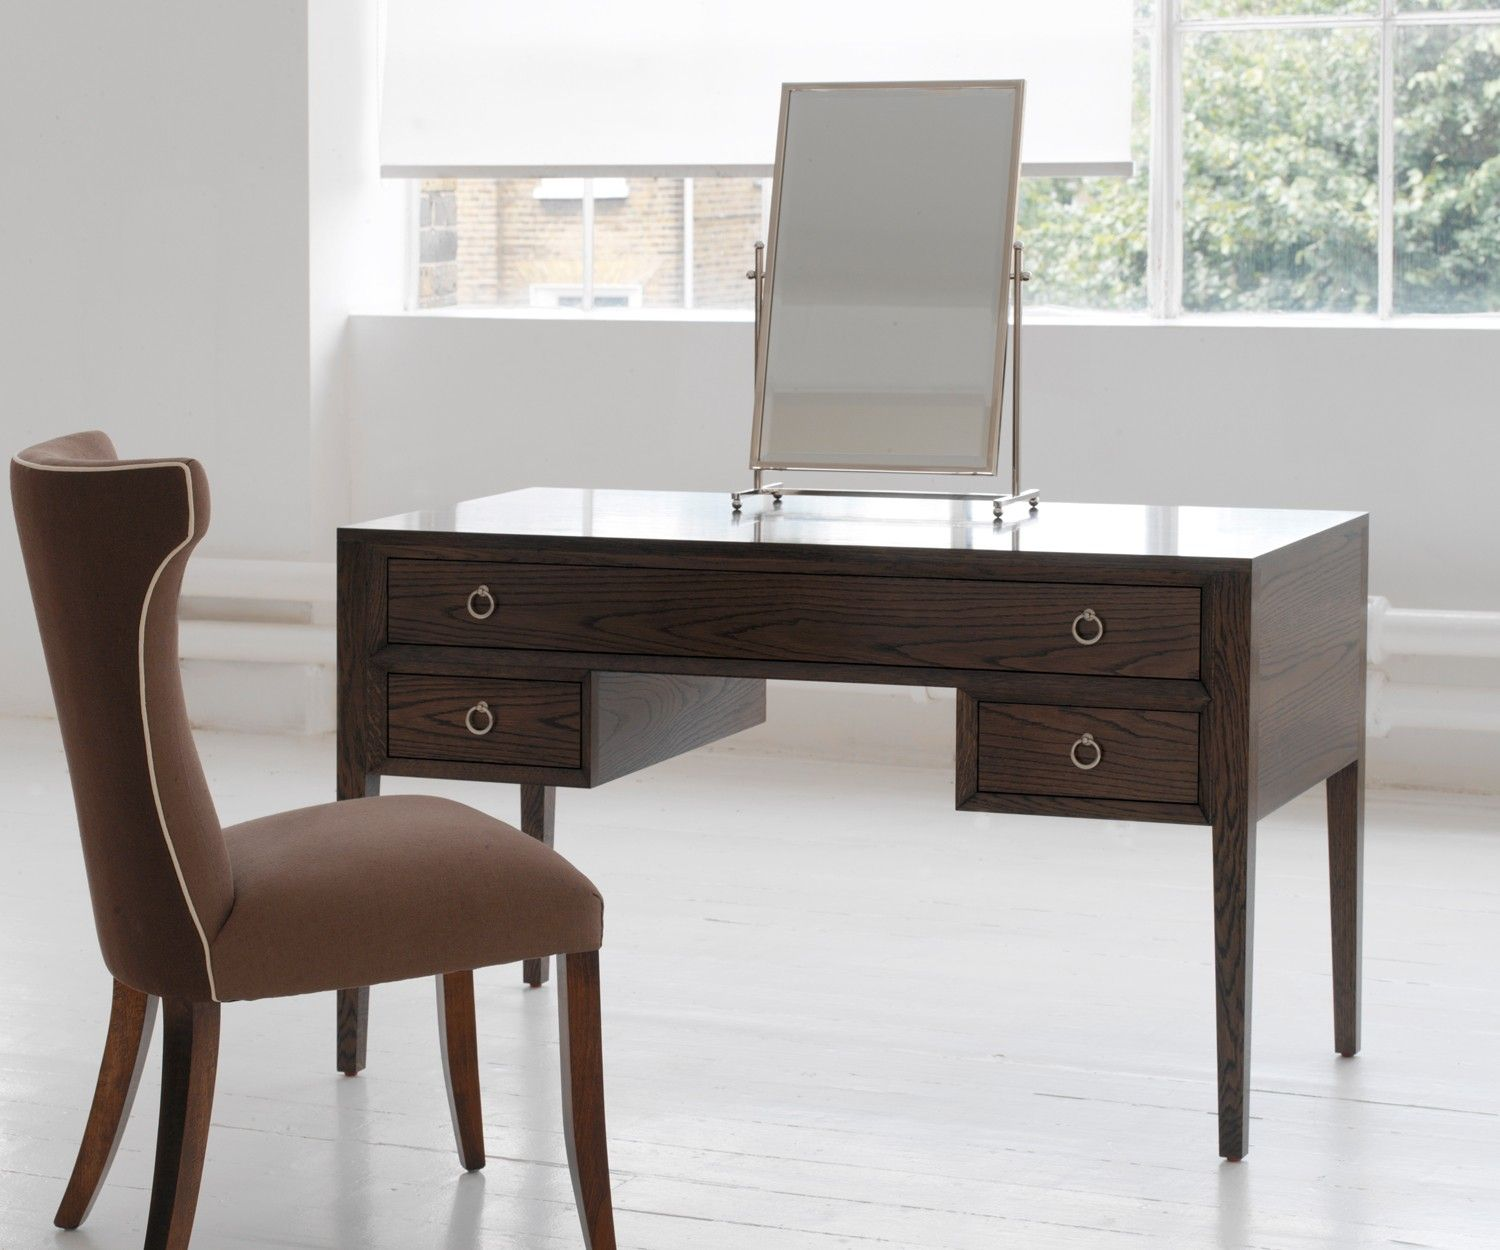 Sooma dressing table has usefull drawers and is pictured in new